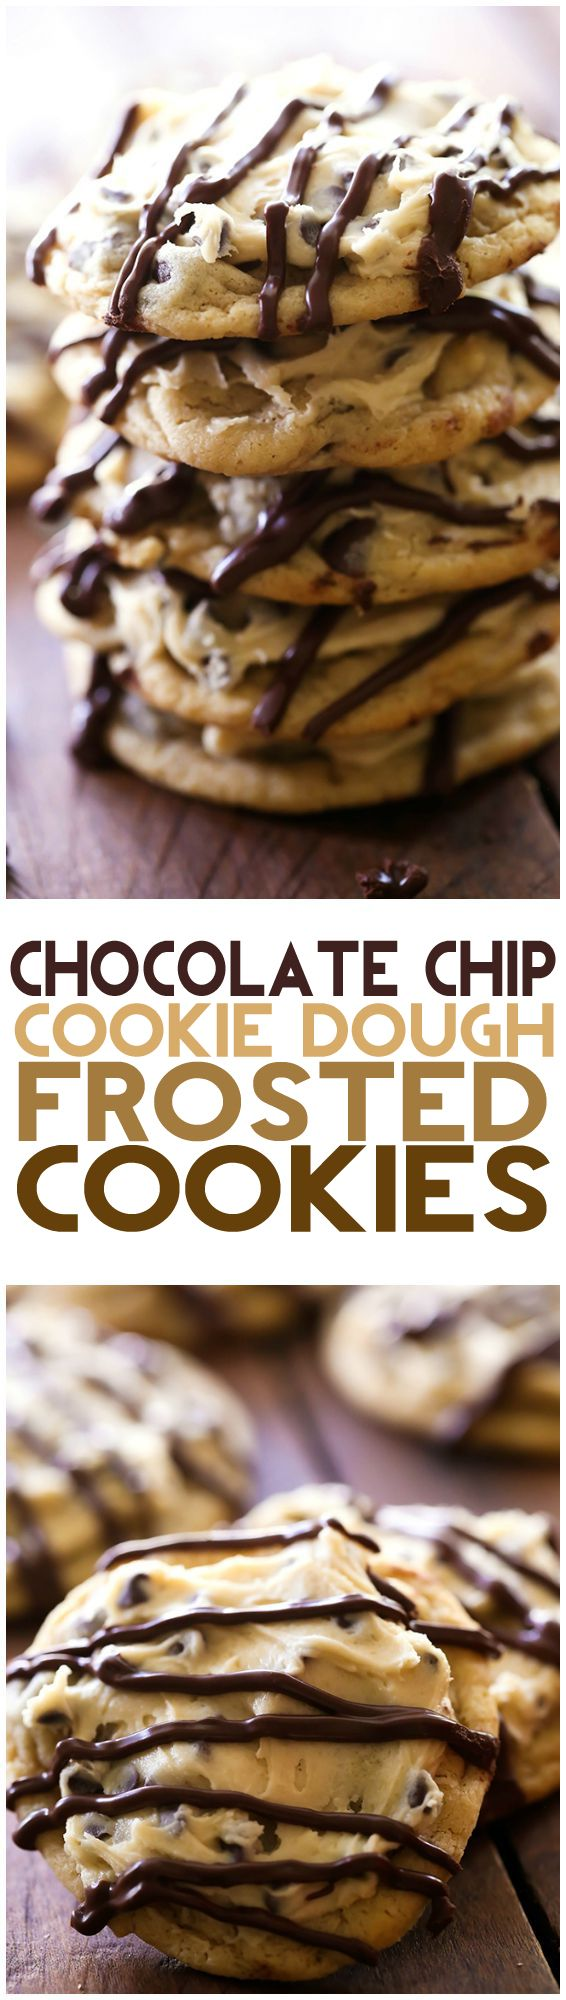 Chocolate Chip Cookie Dough Frosted Cookies... these are a chocolate chip cookie lover's dream come true! The cookie and a cookie dough frosting- its like the best of both worlds!